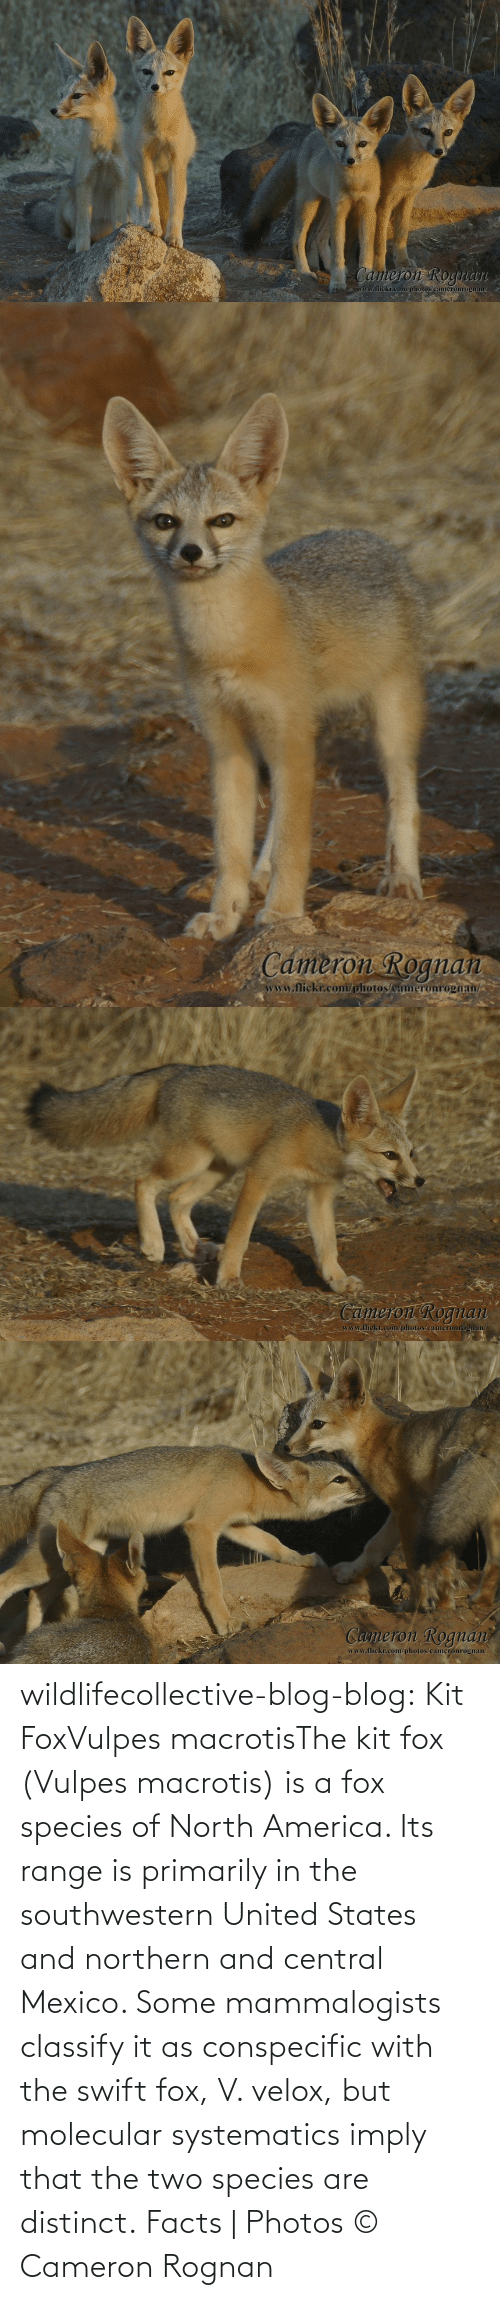 Wiki: wildlifecollective-blog-blog:  Kit FoxVulpes macrotisThe kit fox (Vulpes macrotis) is a fox species of North America. Its range is primarily in the southwestern United States and northern and central Mexico. Some mammalogists classify it as conspecific with the swift fox, V. velox, but molecular systematics imply that the two species are distinct. Facts | Photos © Cameron Rognan